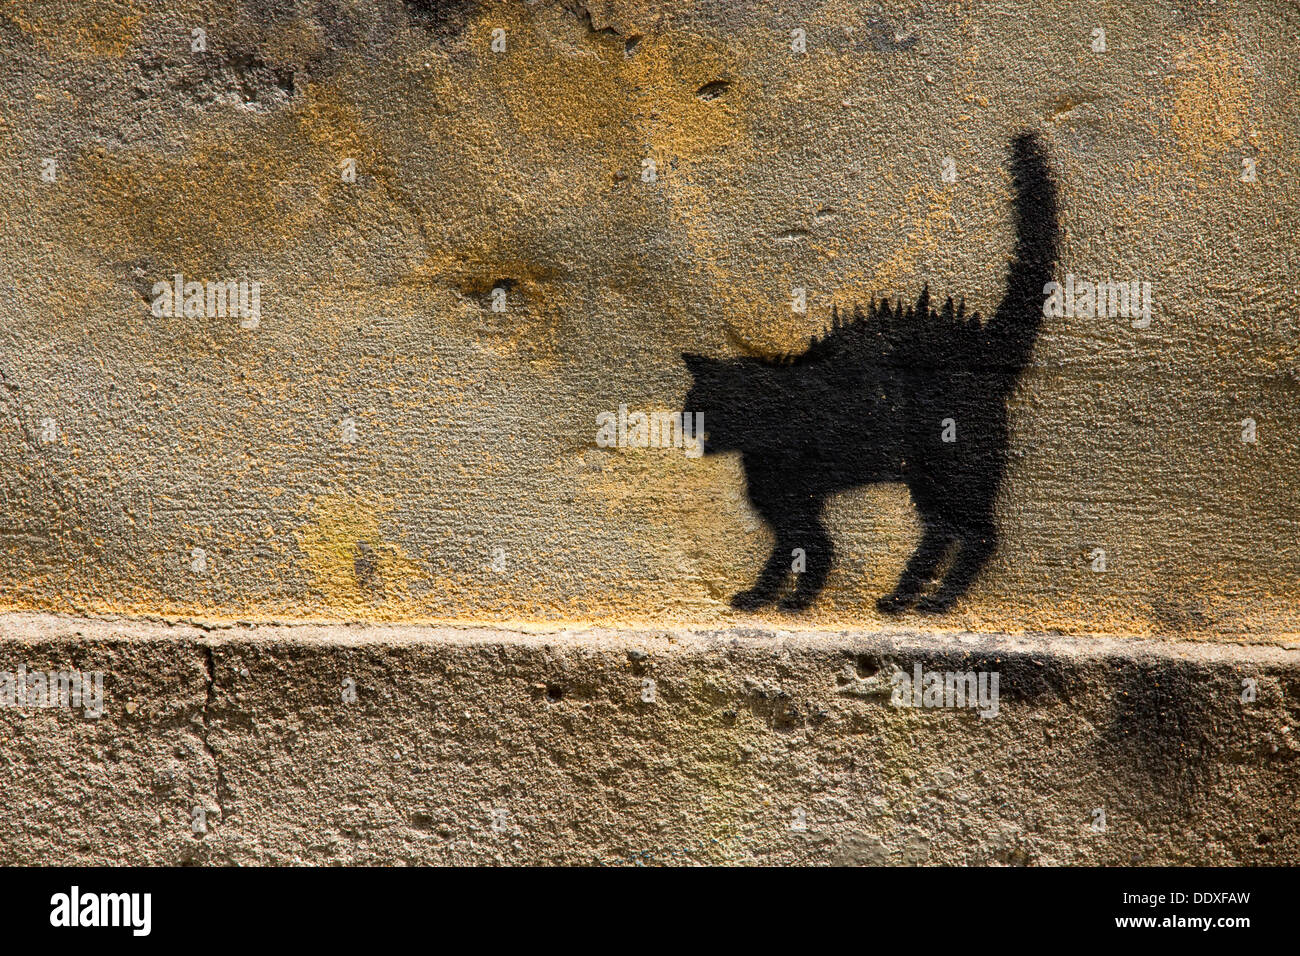 outline-of-cat-painted-on-rough-wall-in-